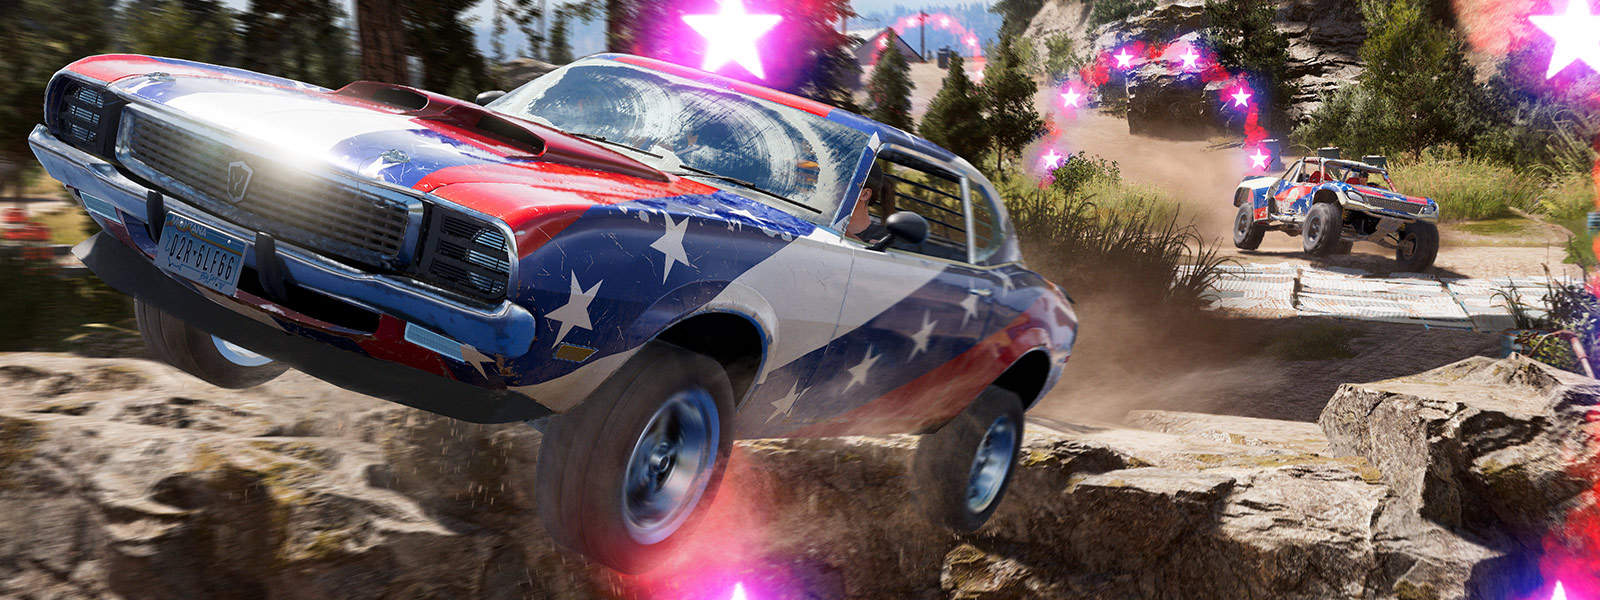 A classic muscle car with a stars-and-stripes paint job rides off a cliff